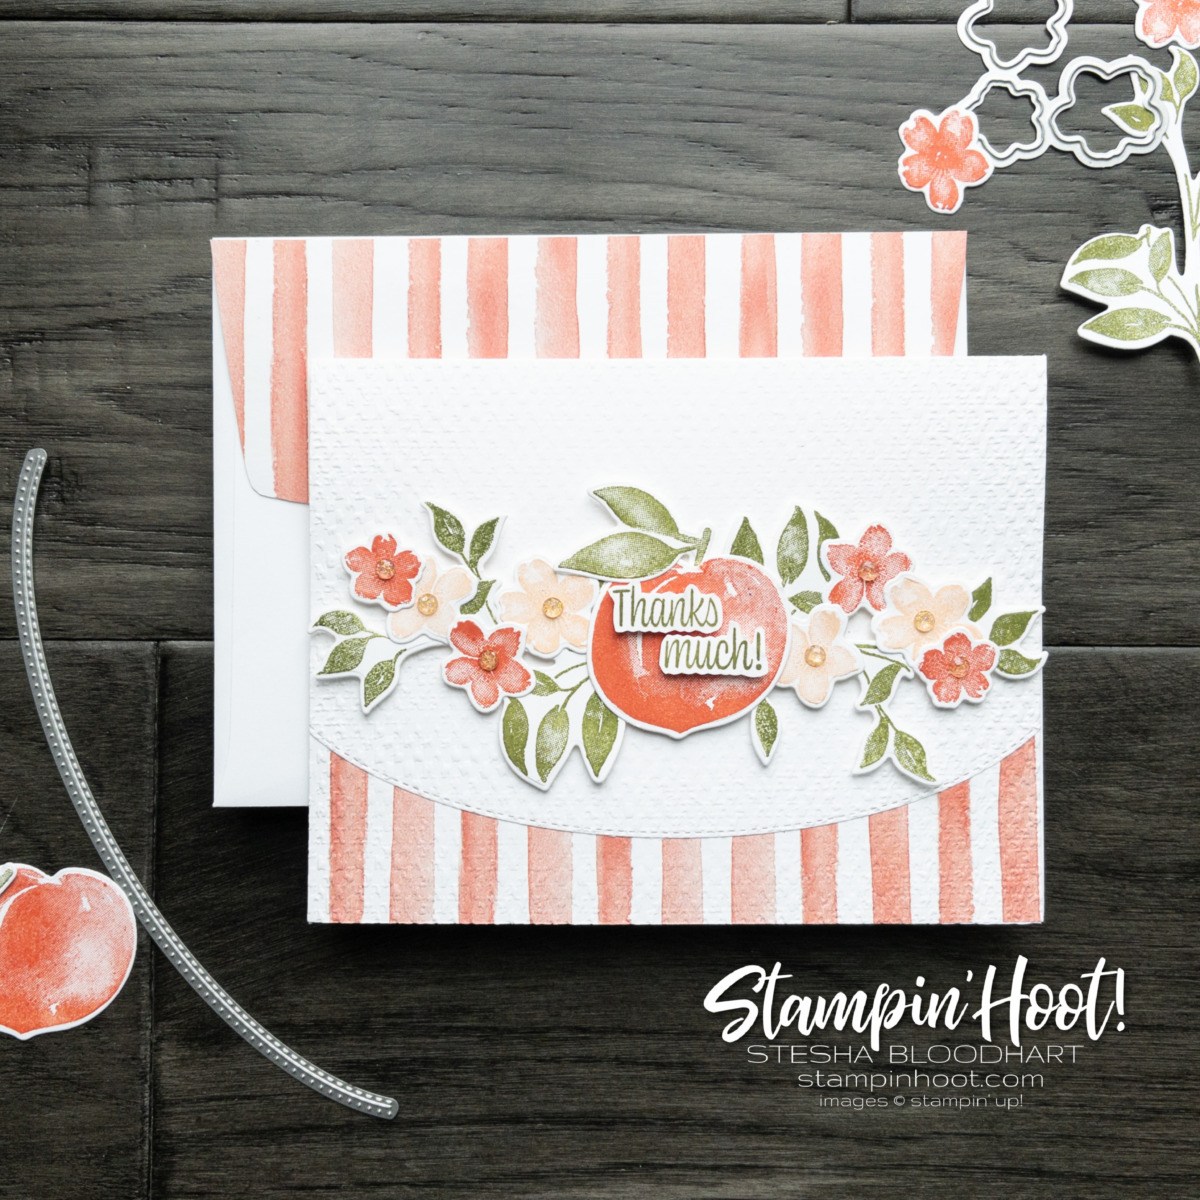 You're a Peach Suite Collection from Stampin' Up! Thanks Much Card by Stesha Bloodhart, Stampin' Hoot!